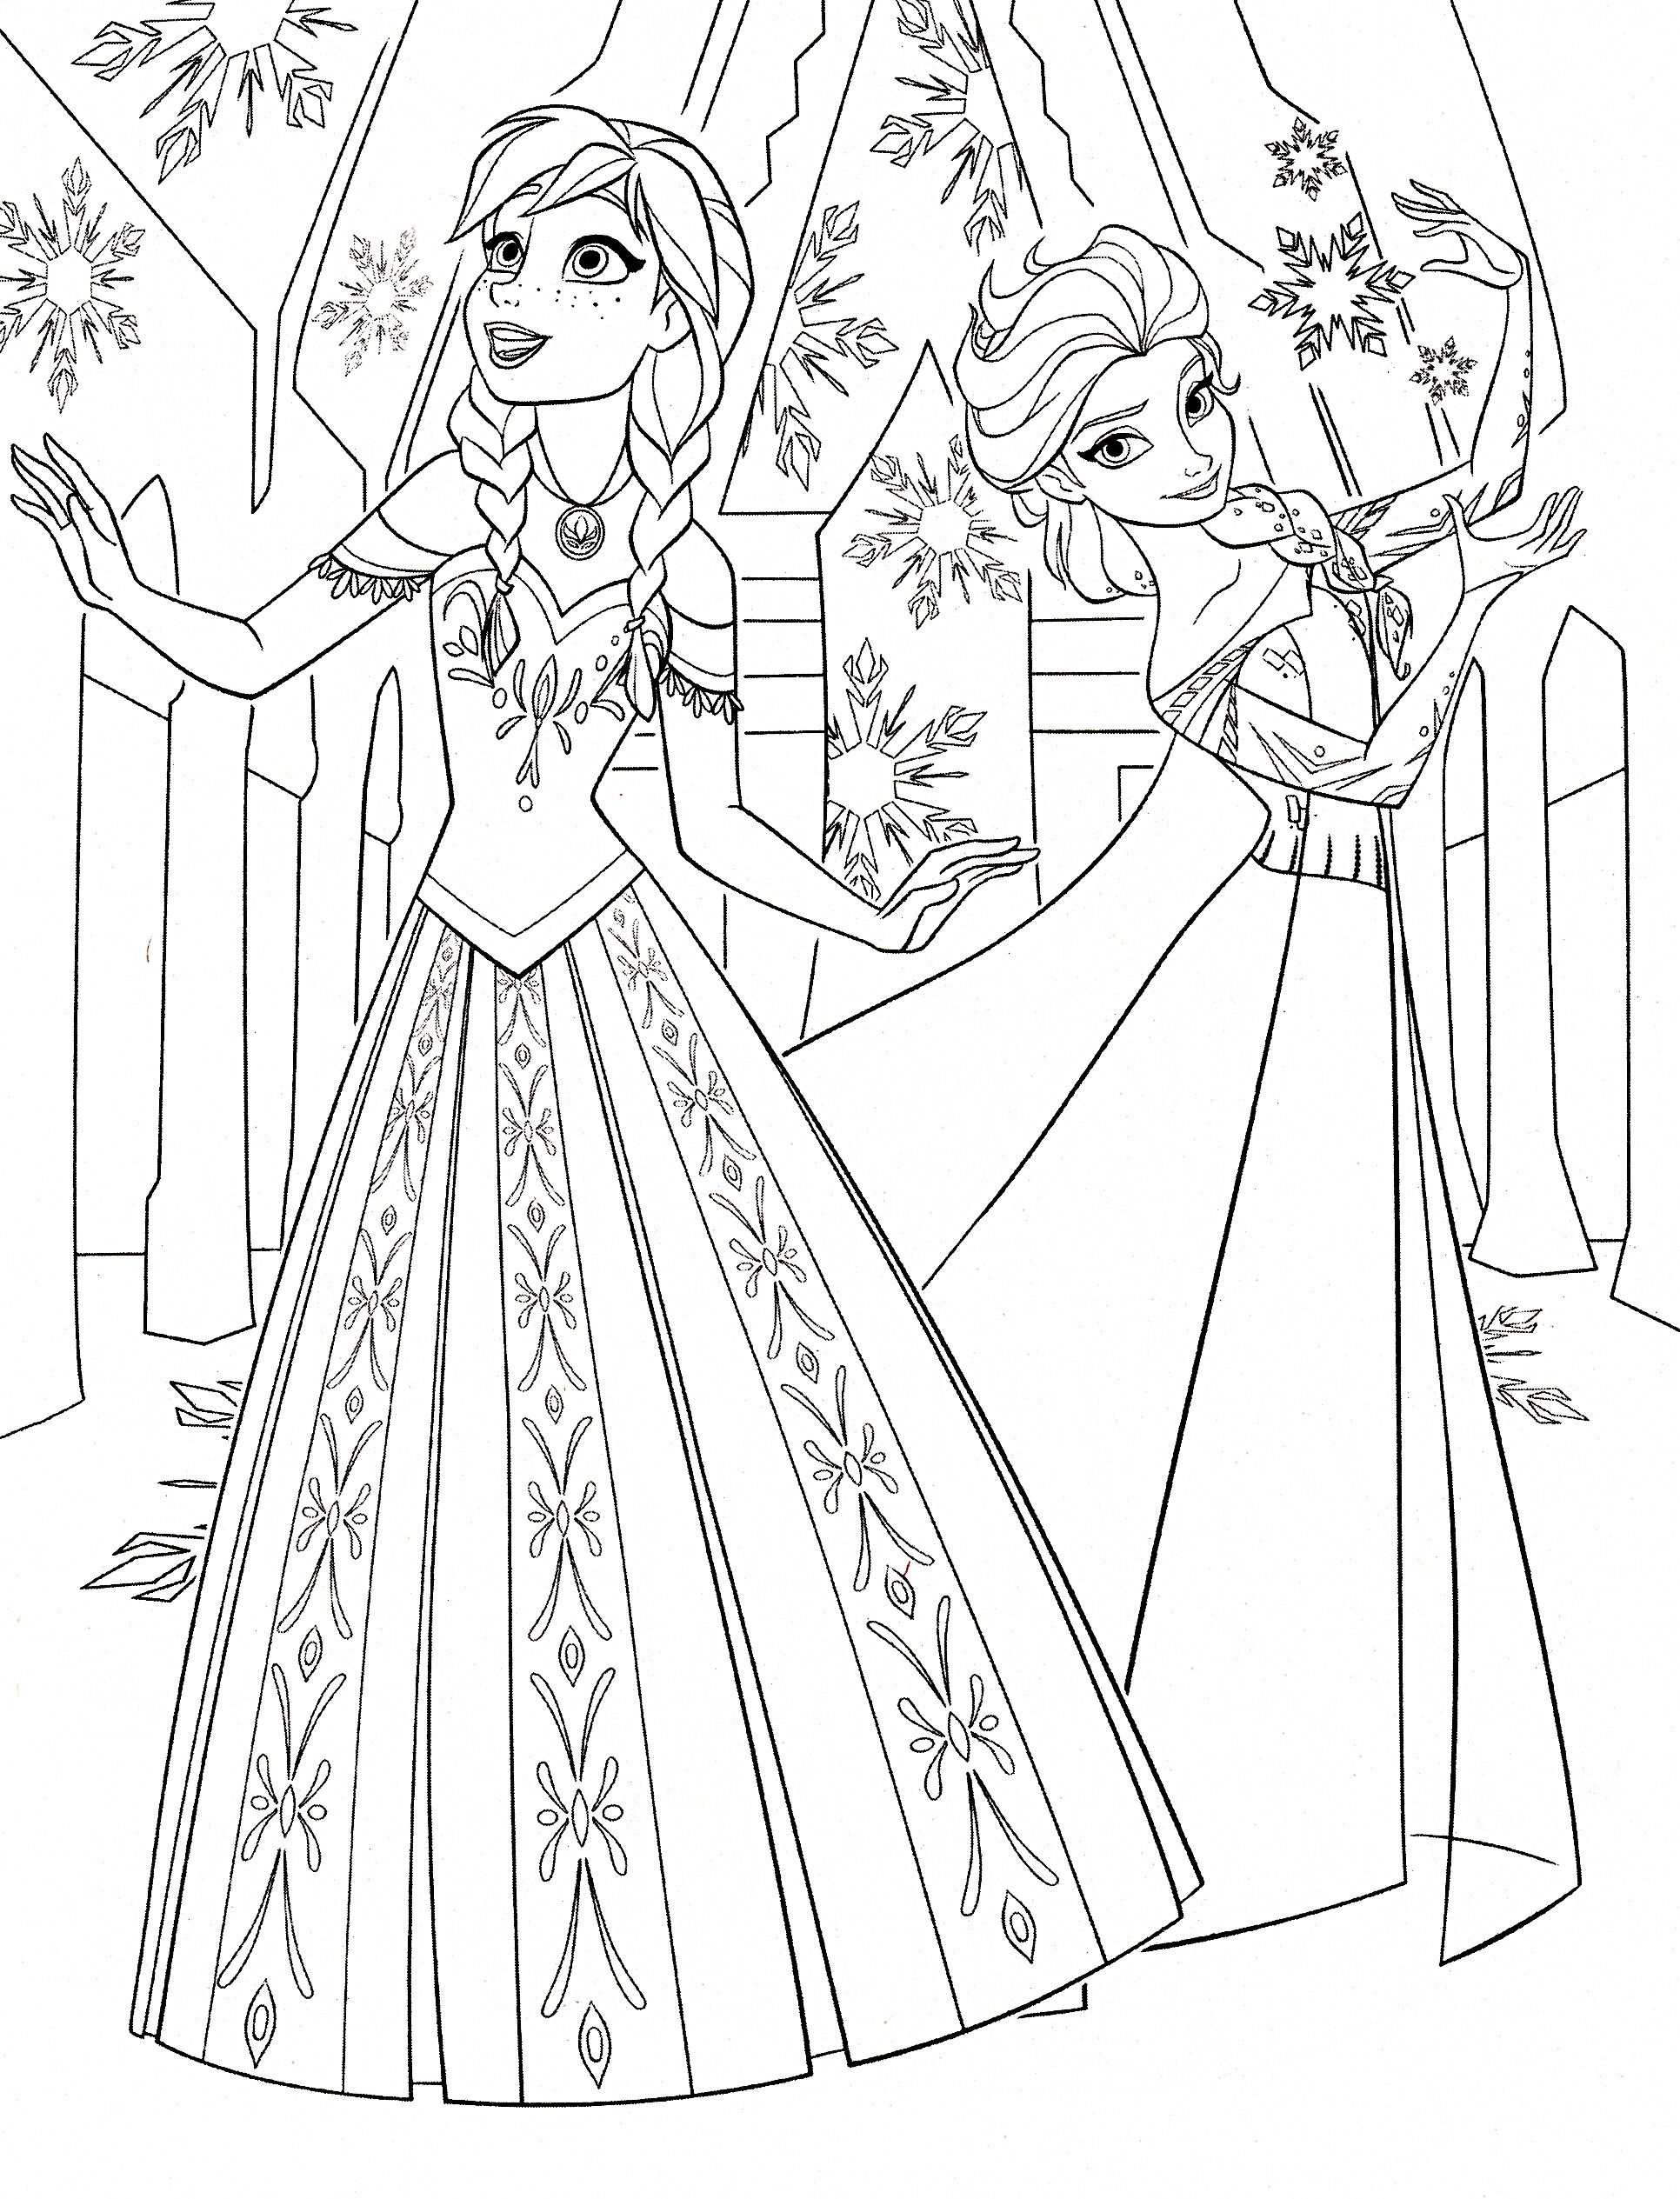 color pages of anna frozen walt disney princess characters